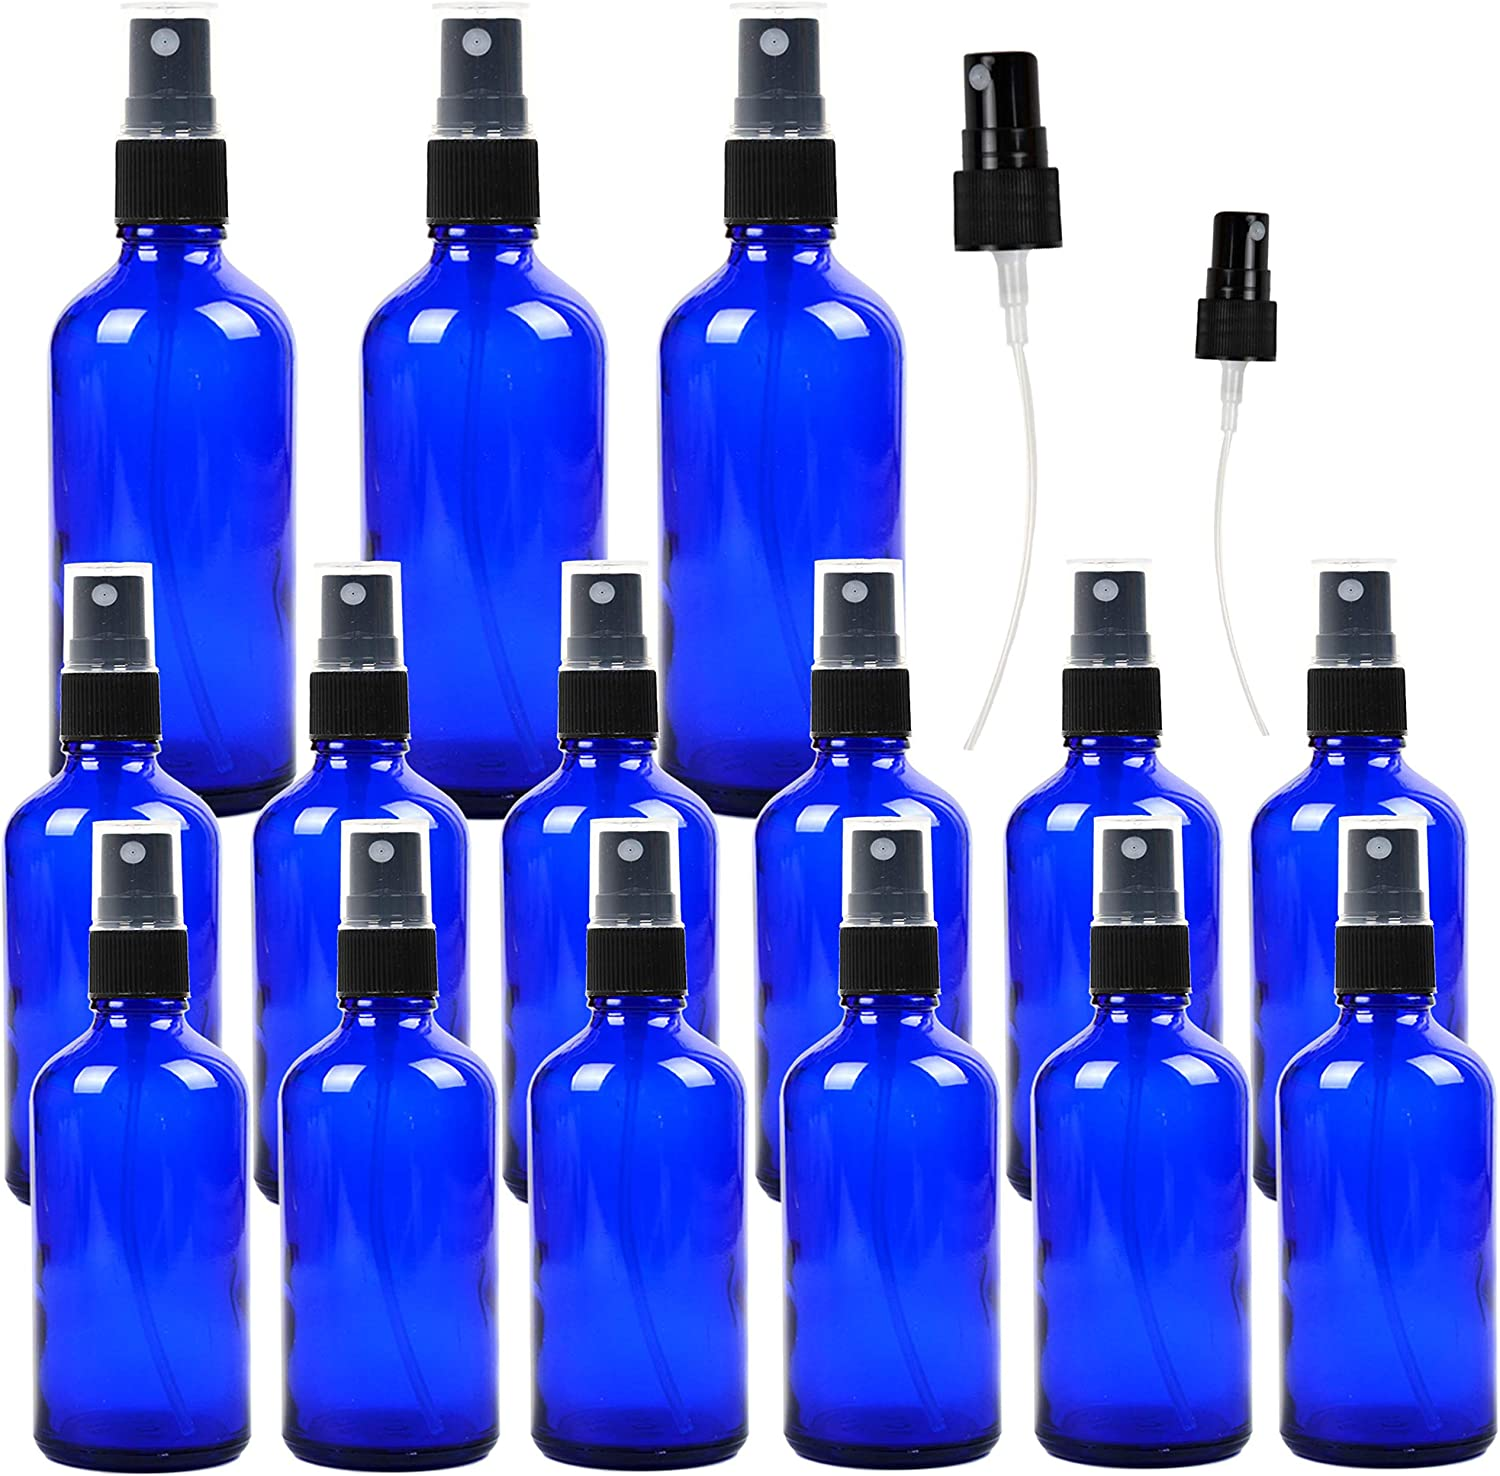 Youngever 15 Pack Empty Cobalt Blue Glass Spray Bottles, 3 Pack 4 Ounce and 12 Pack 2 Ounce Refillable Containers for Essential Oils, Cleaning Products, Aromatherapy, Durable Black Fine Mist Sprayers